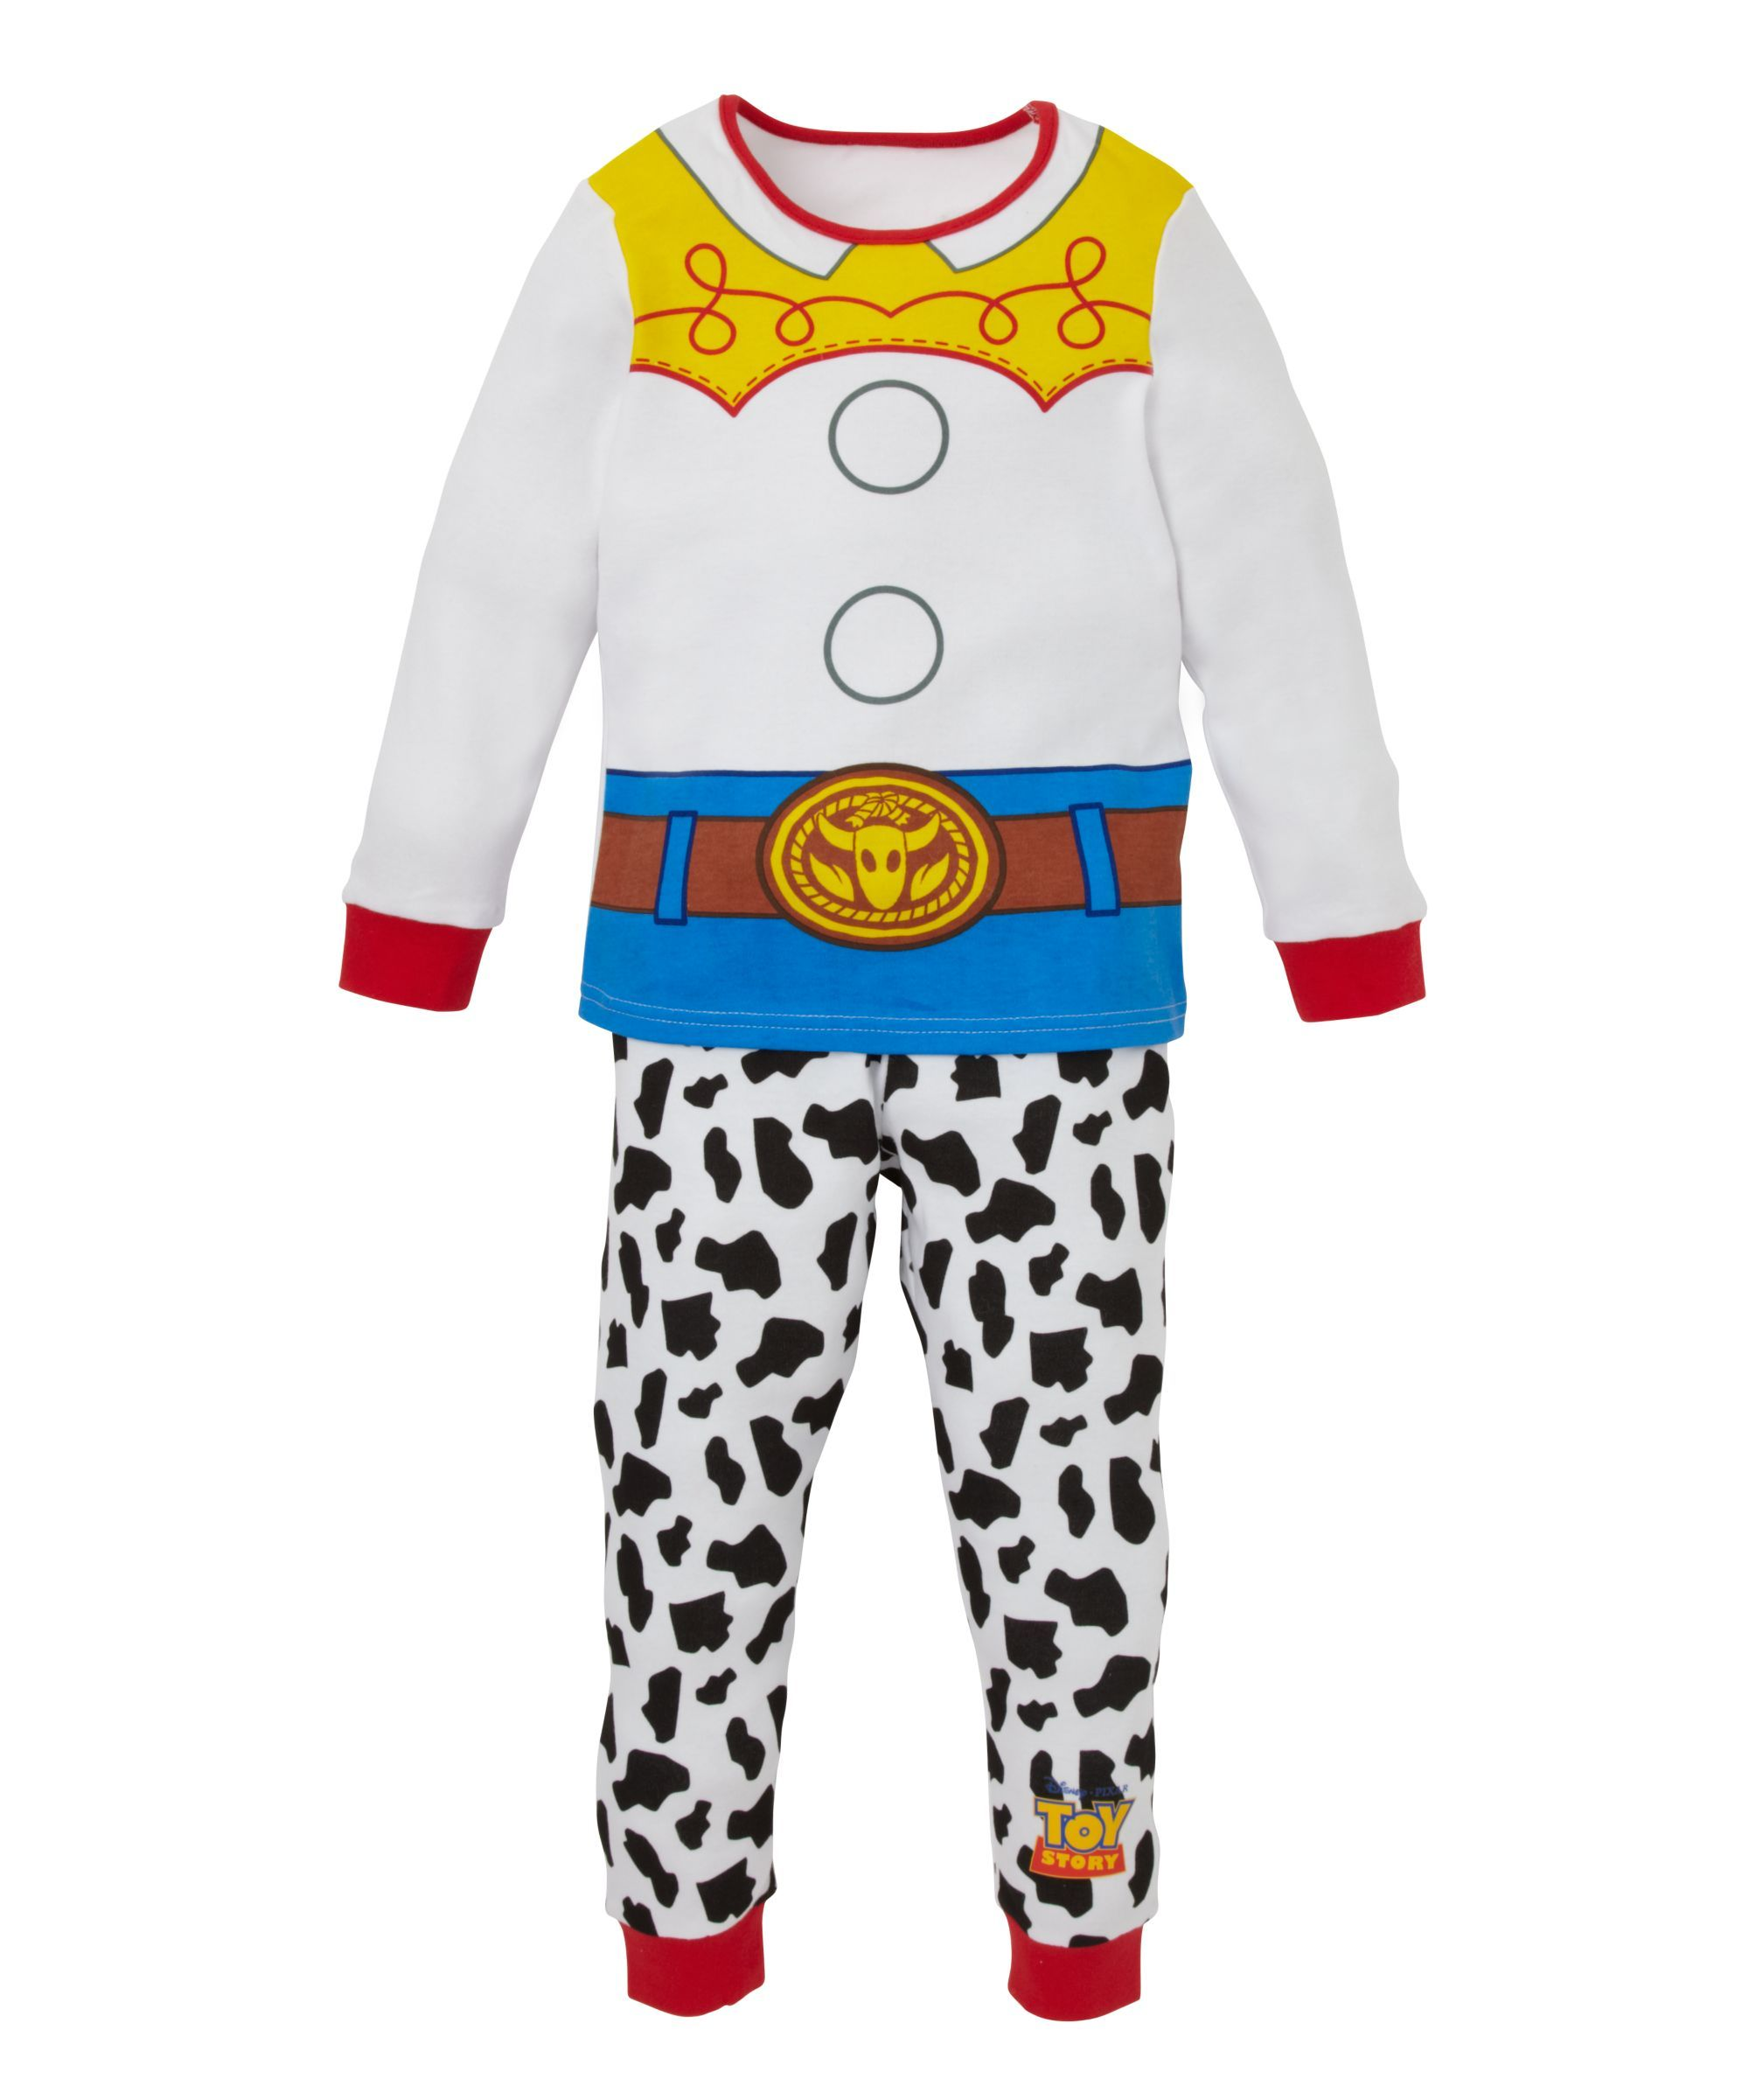 acc00c9b7 Disney Toy Story Jessie Dress Up Pyjamas